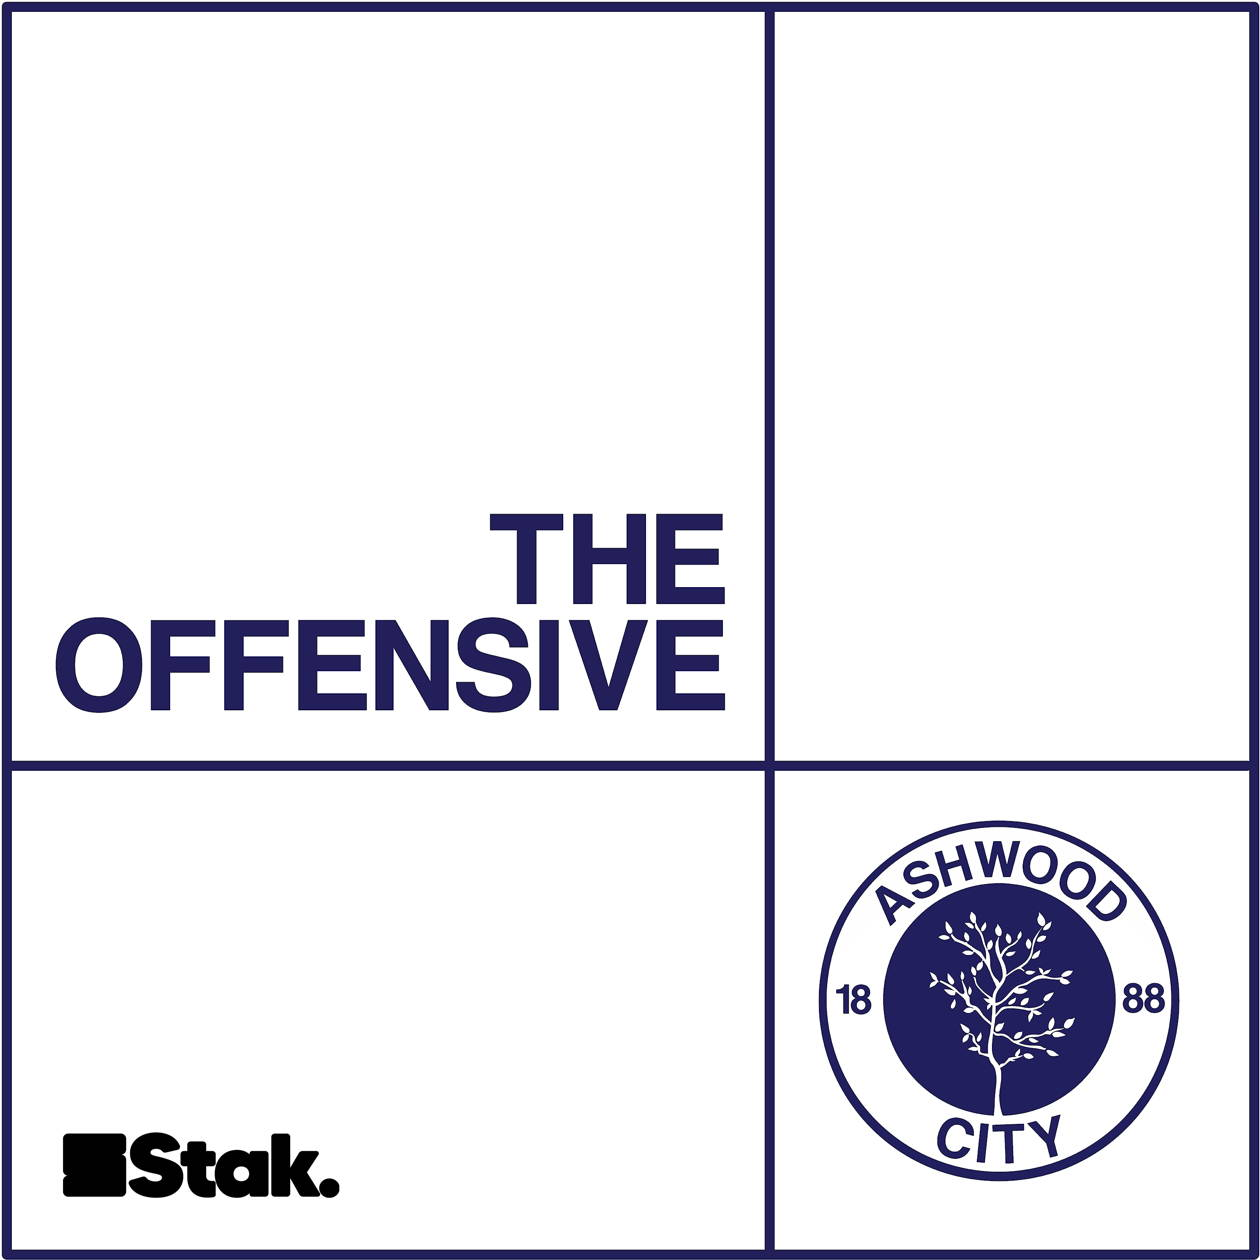 Artwork for the The Offensive podcast.